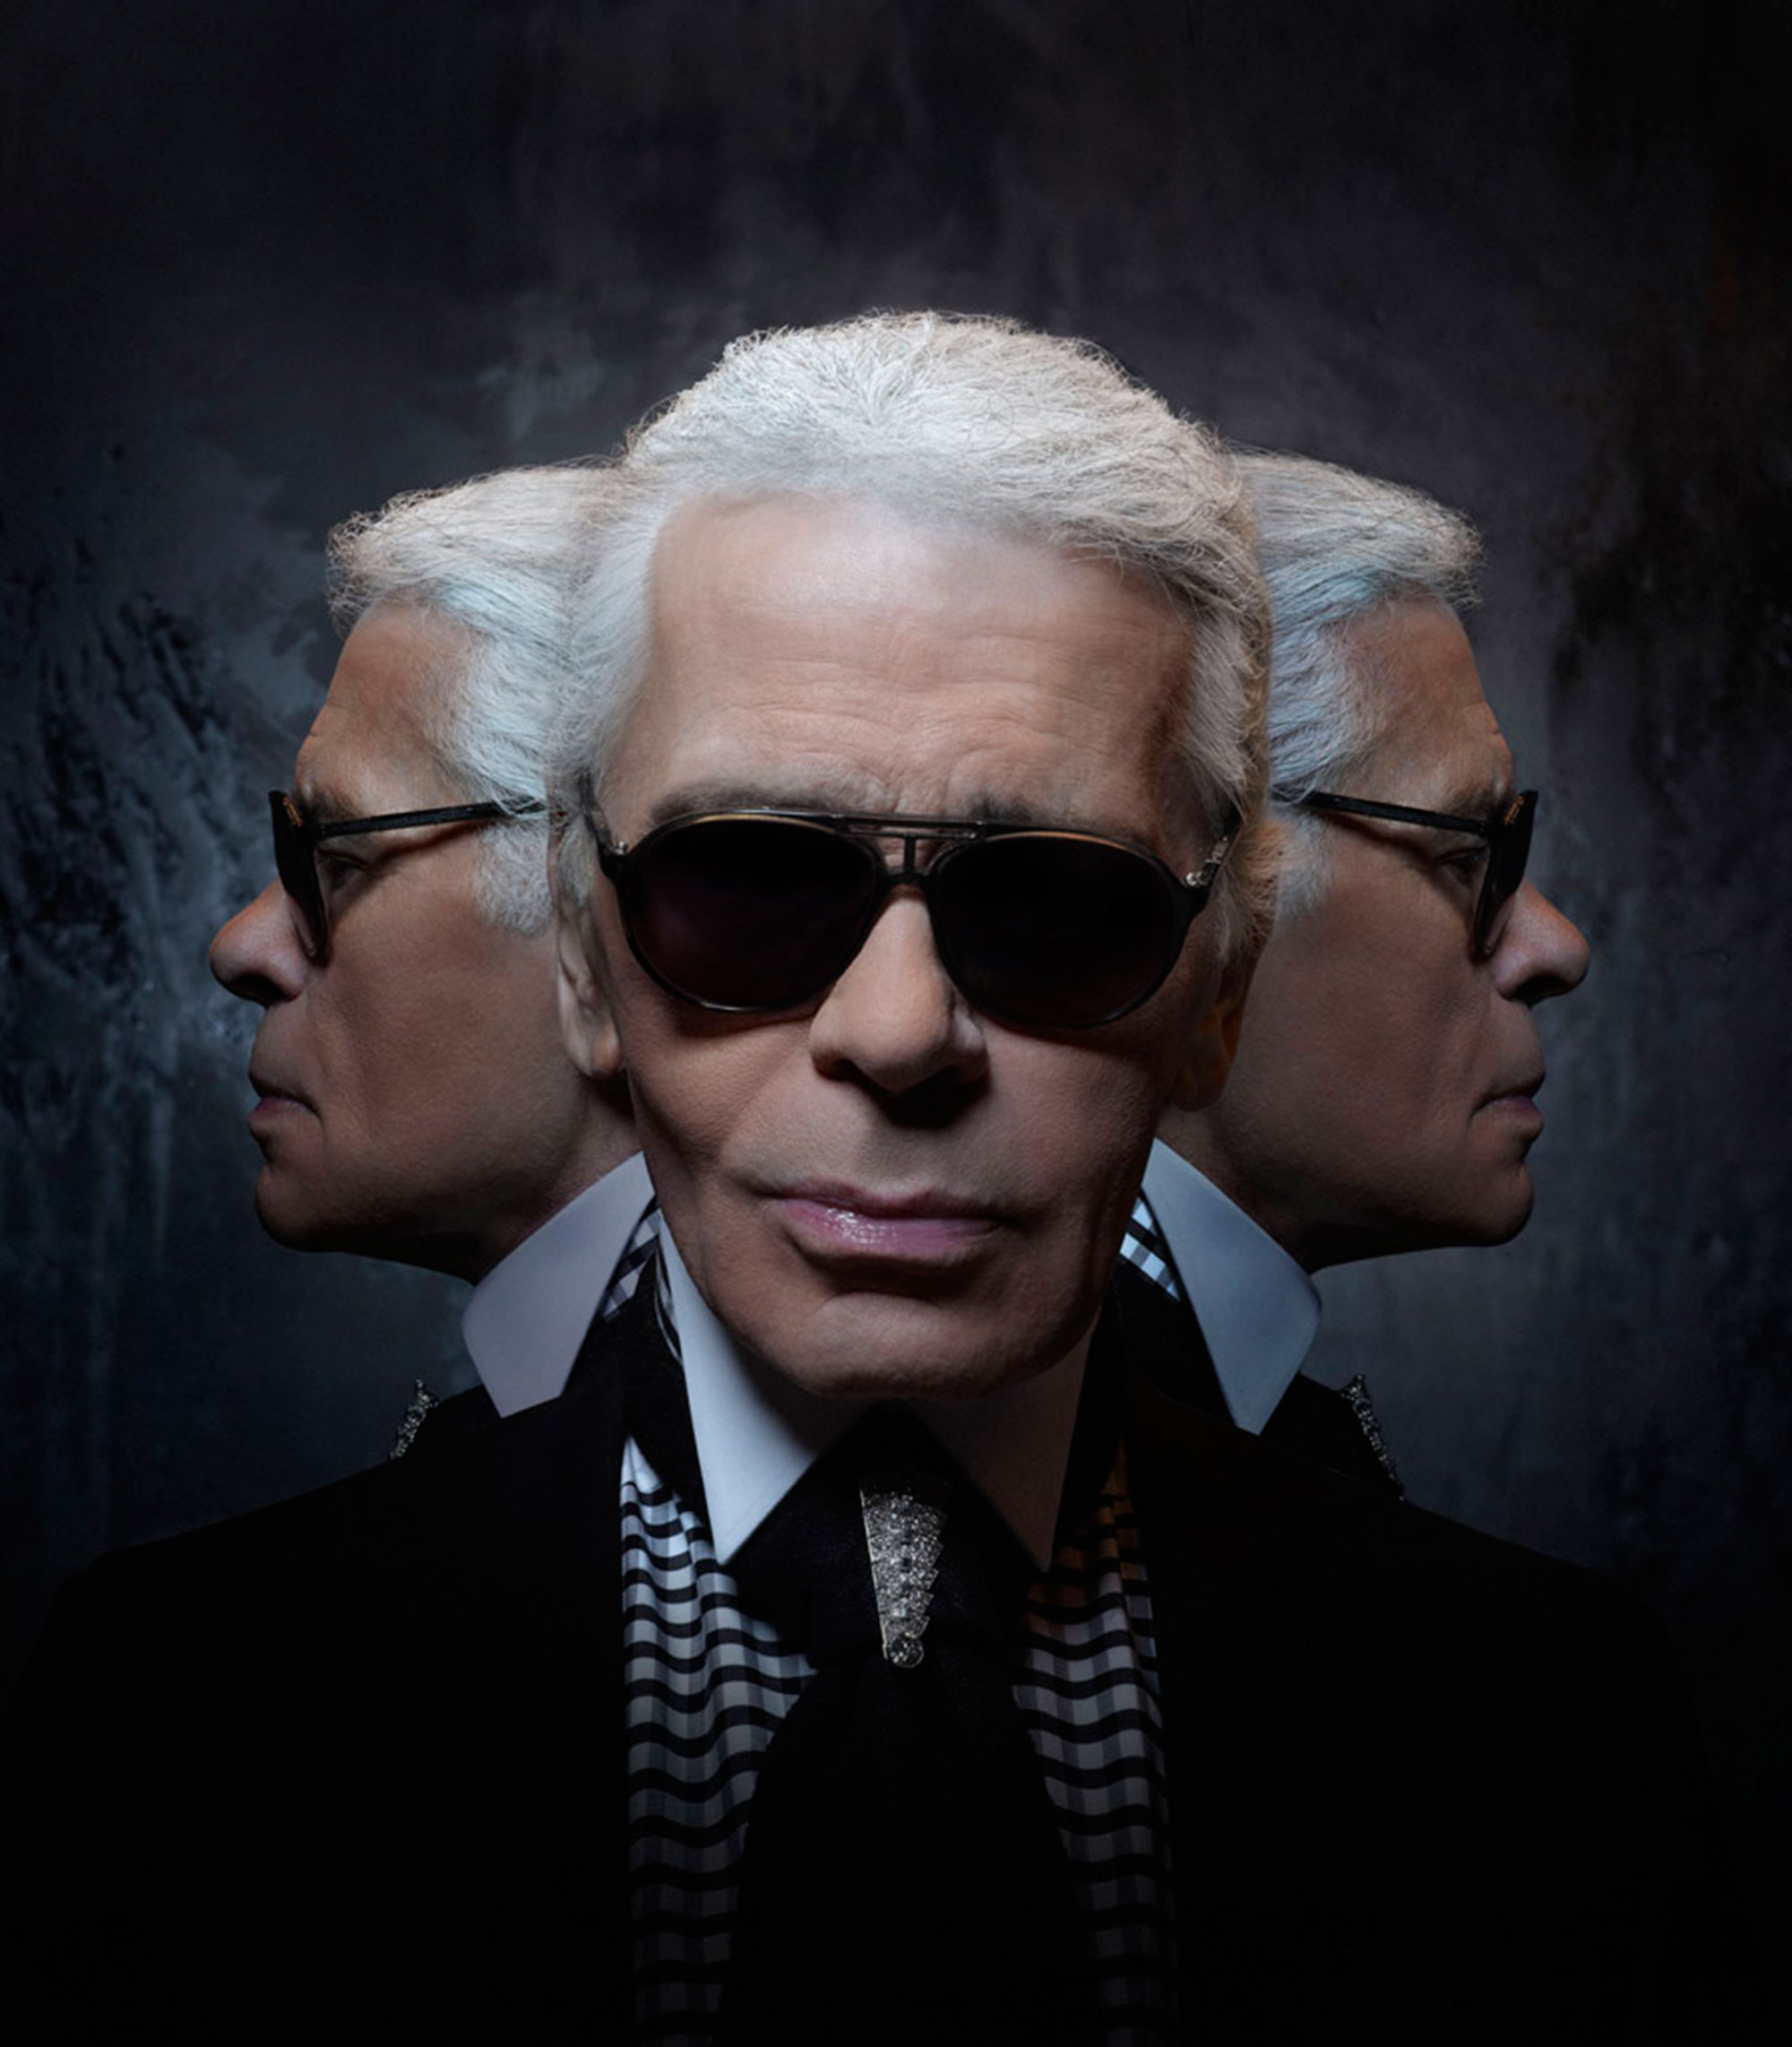 KARL LAGERFELD - MASTER OF DISTRACTION